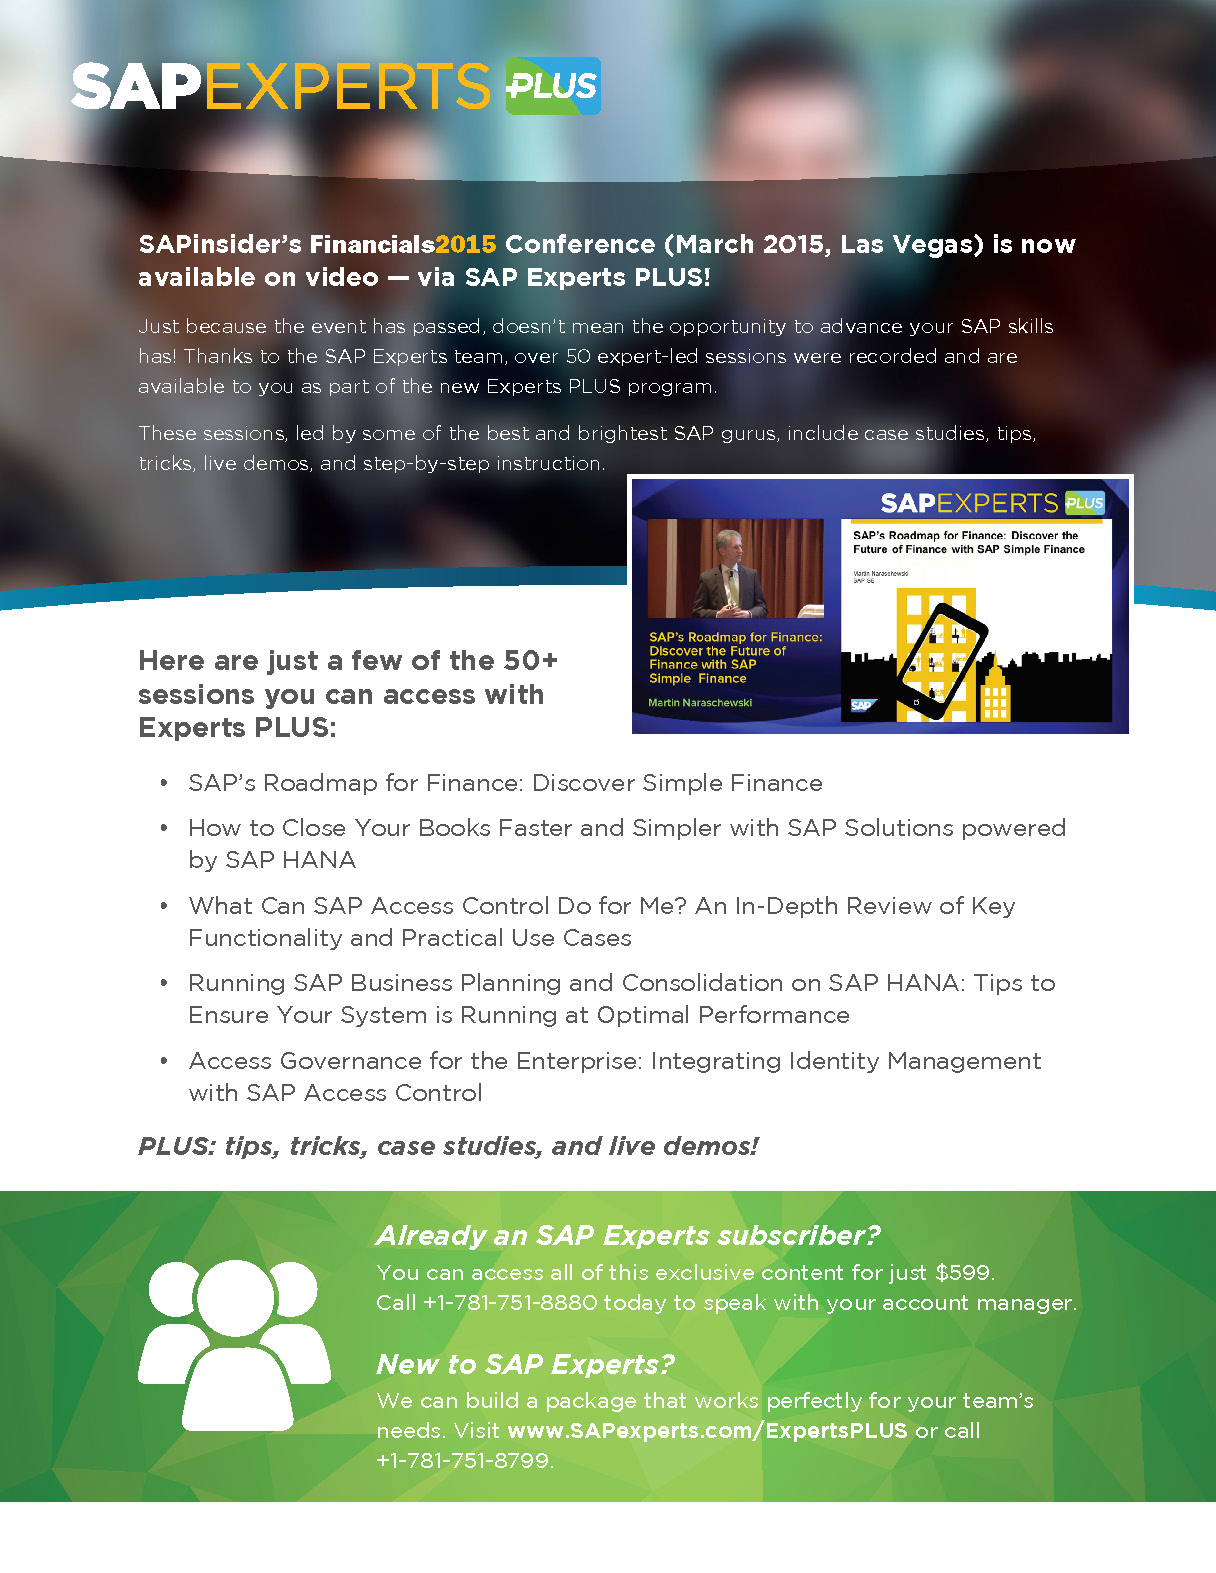 Flyer for SAP Experts Plus